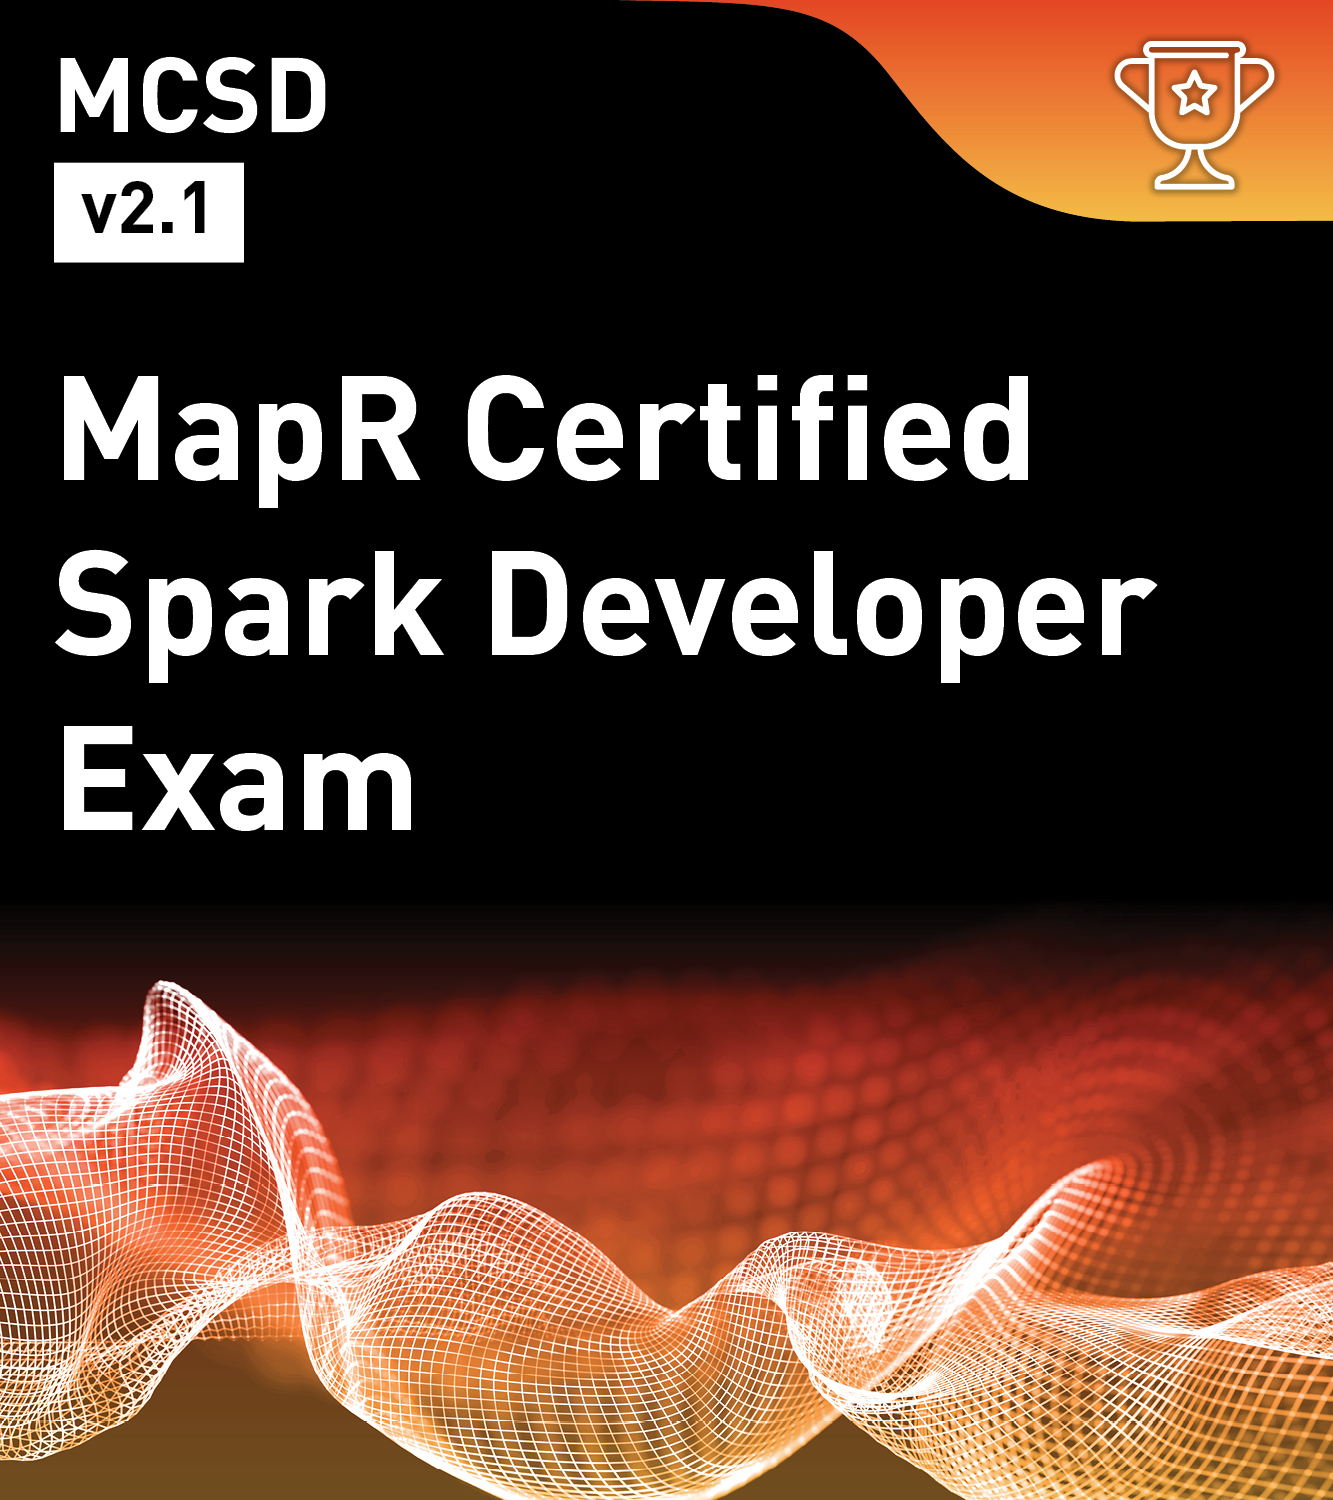 MapR Certified Spark Developer v2.1 (MCSD)